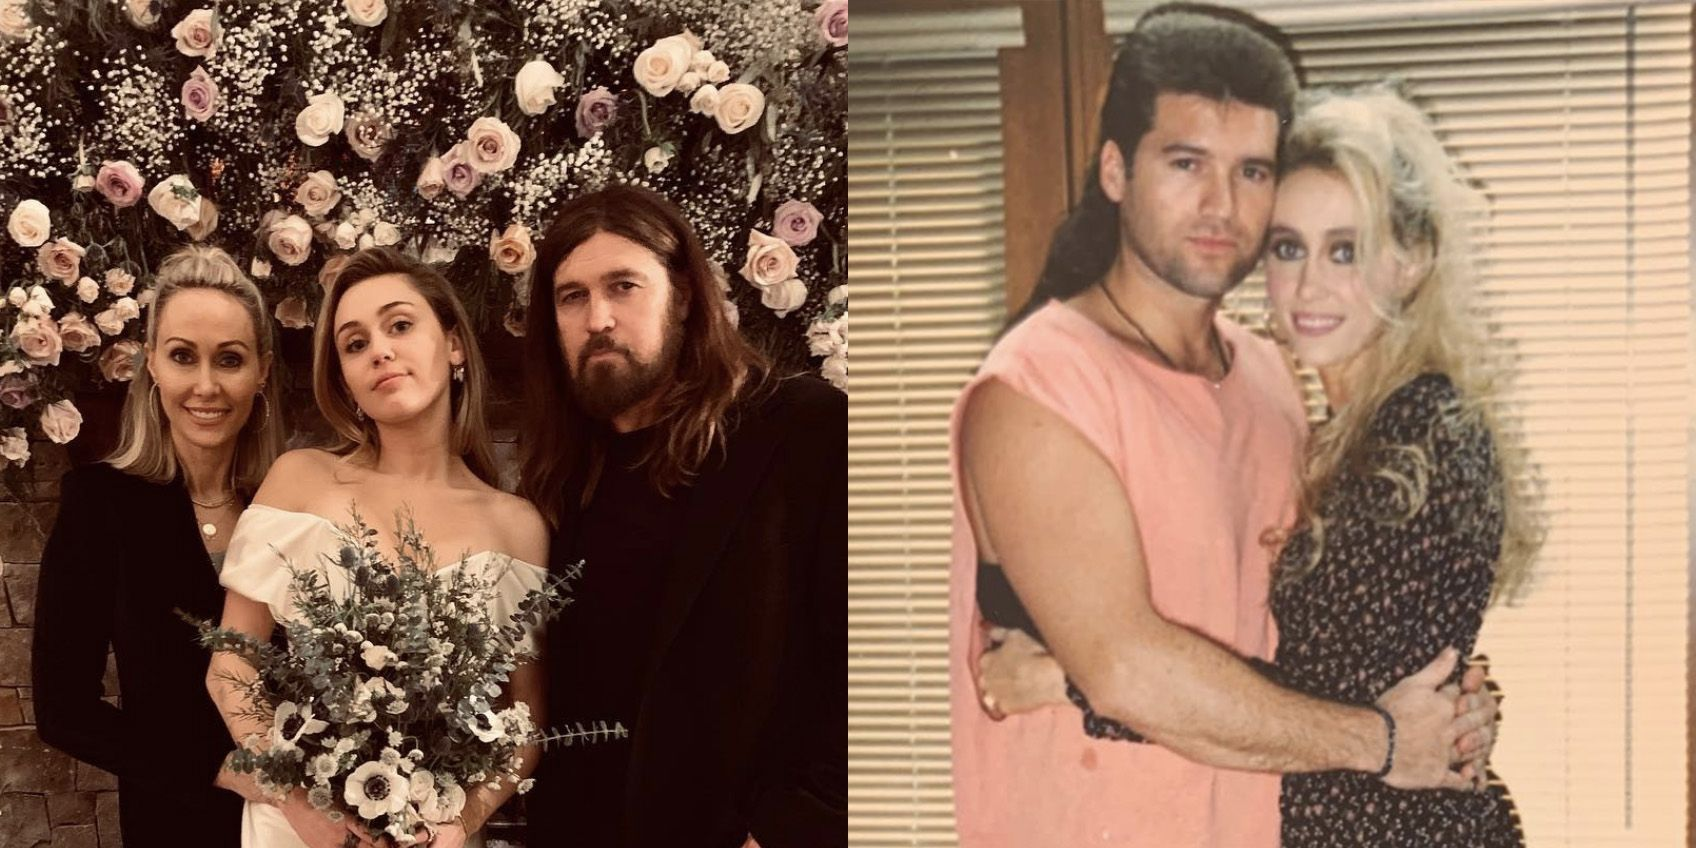 New Details From Behind The Scenes At Miley Cyrus And Liam Hemsworth S Wedding